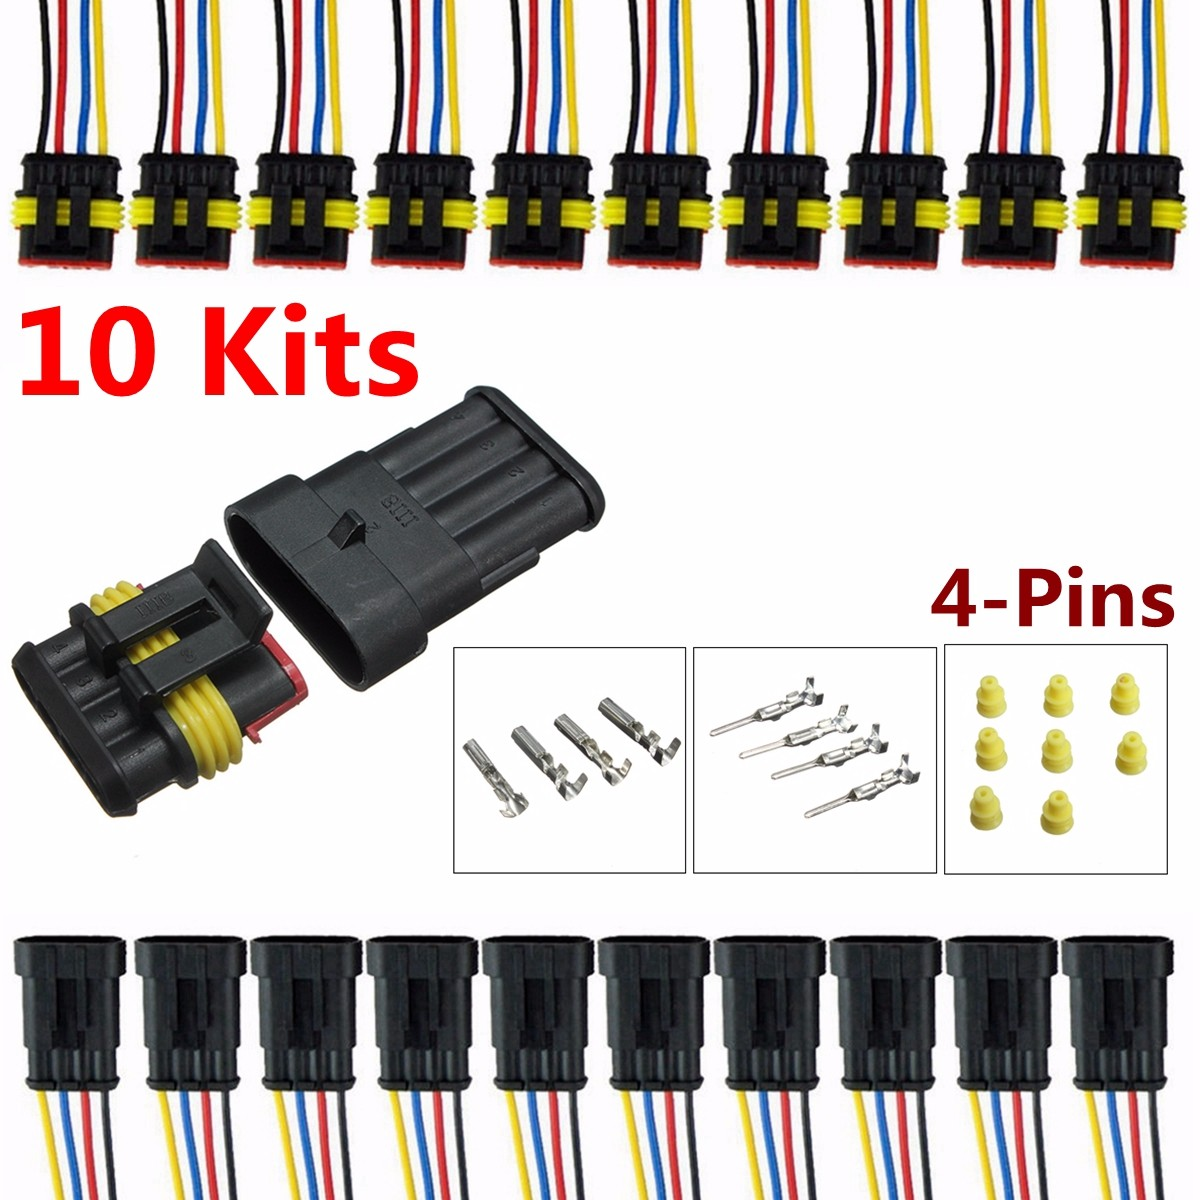 small resolution of audew 10 kits 4 pin way electrical wire connector plug car auto about 10 kit 4 pin way waterproof electrical wire connector plug